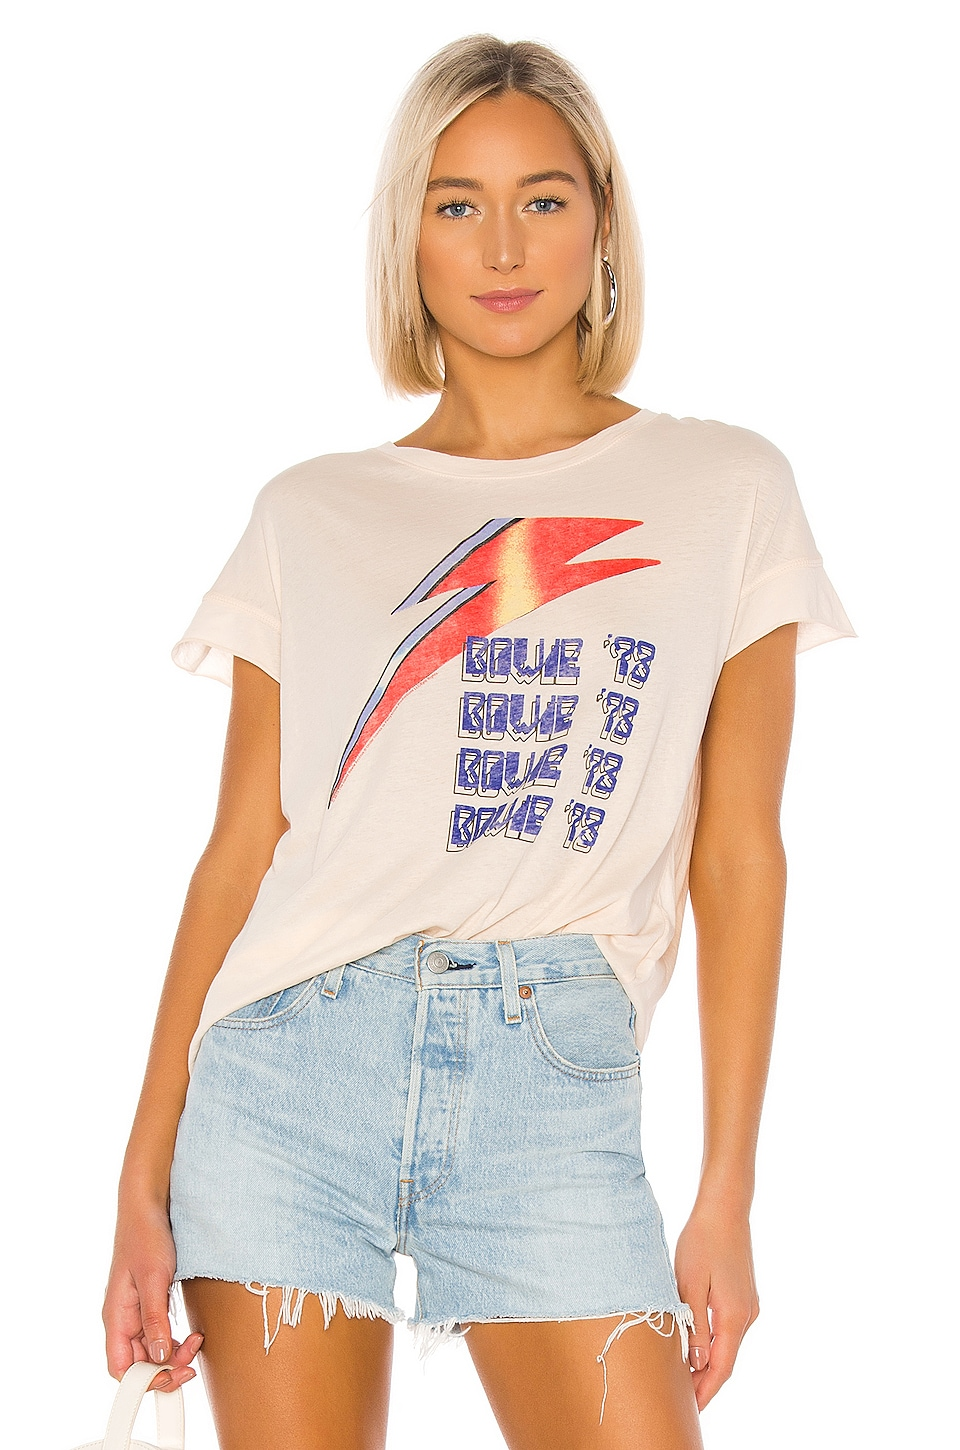 Junk Food Bowie 73 Tee in Bare